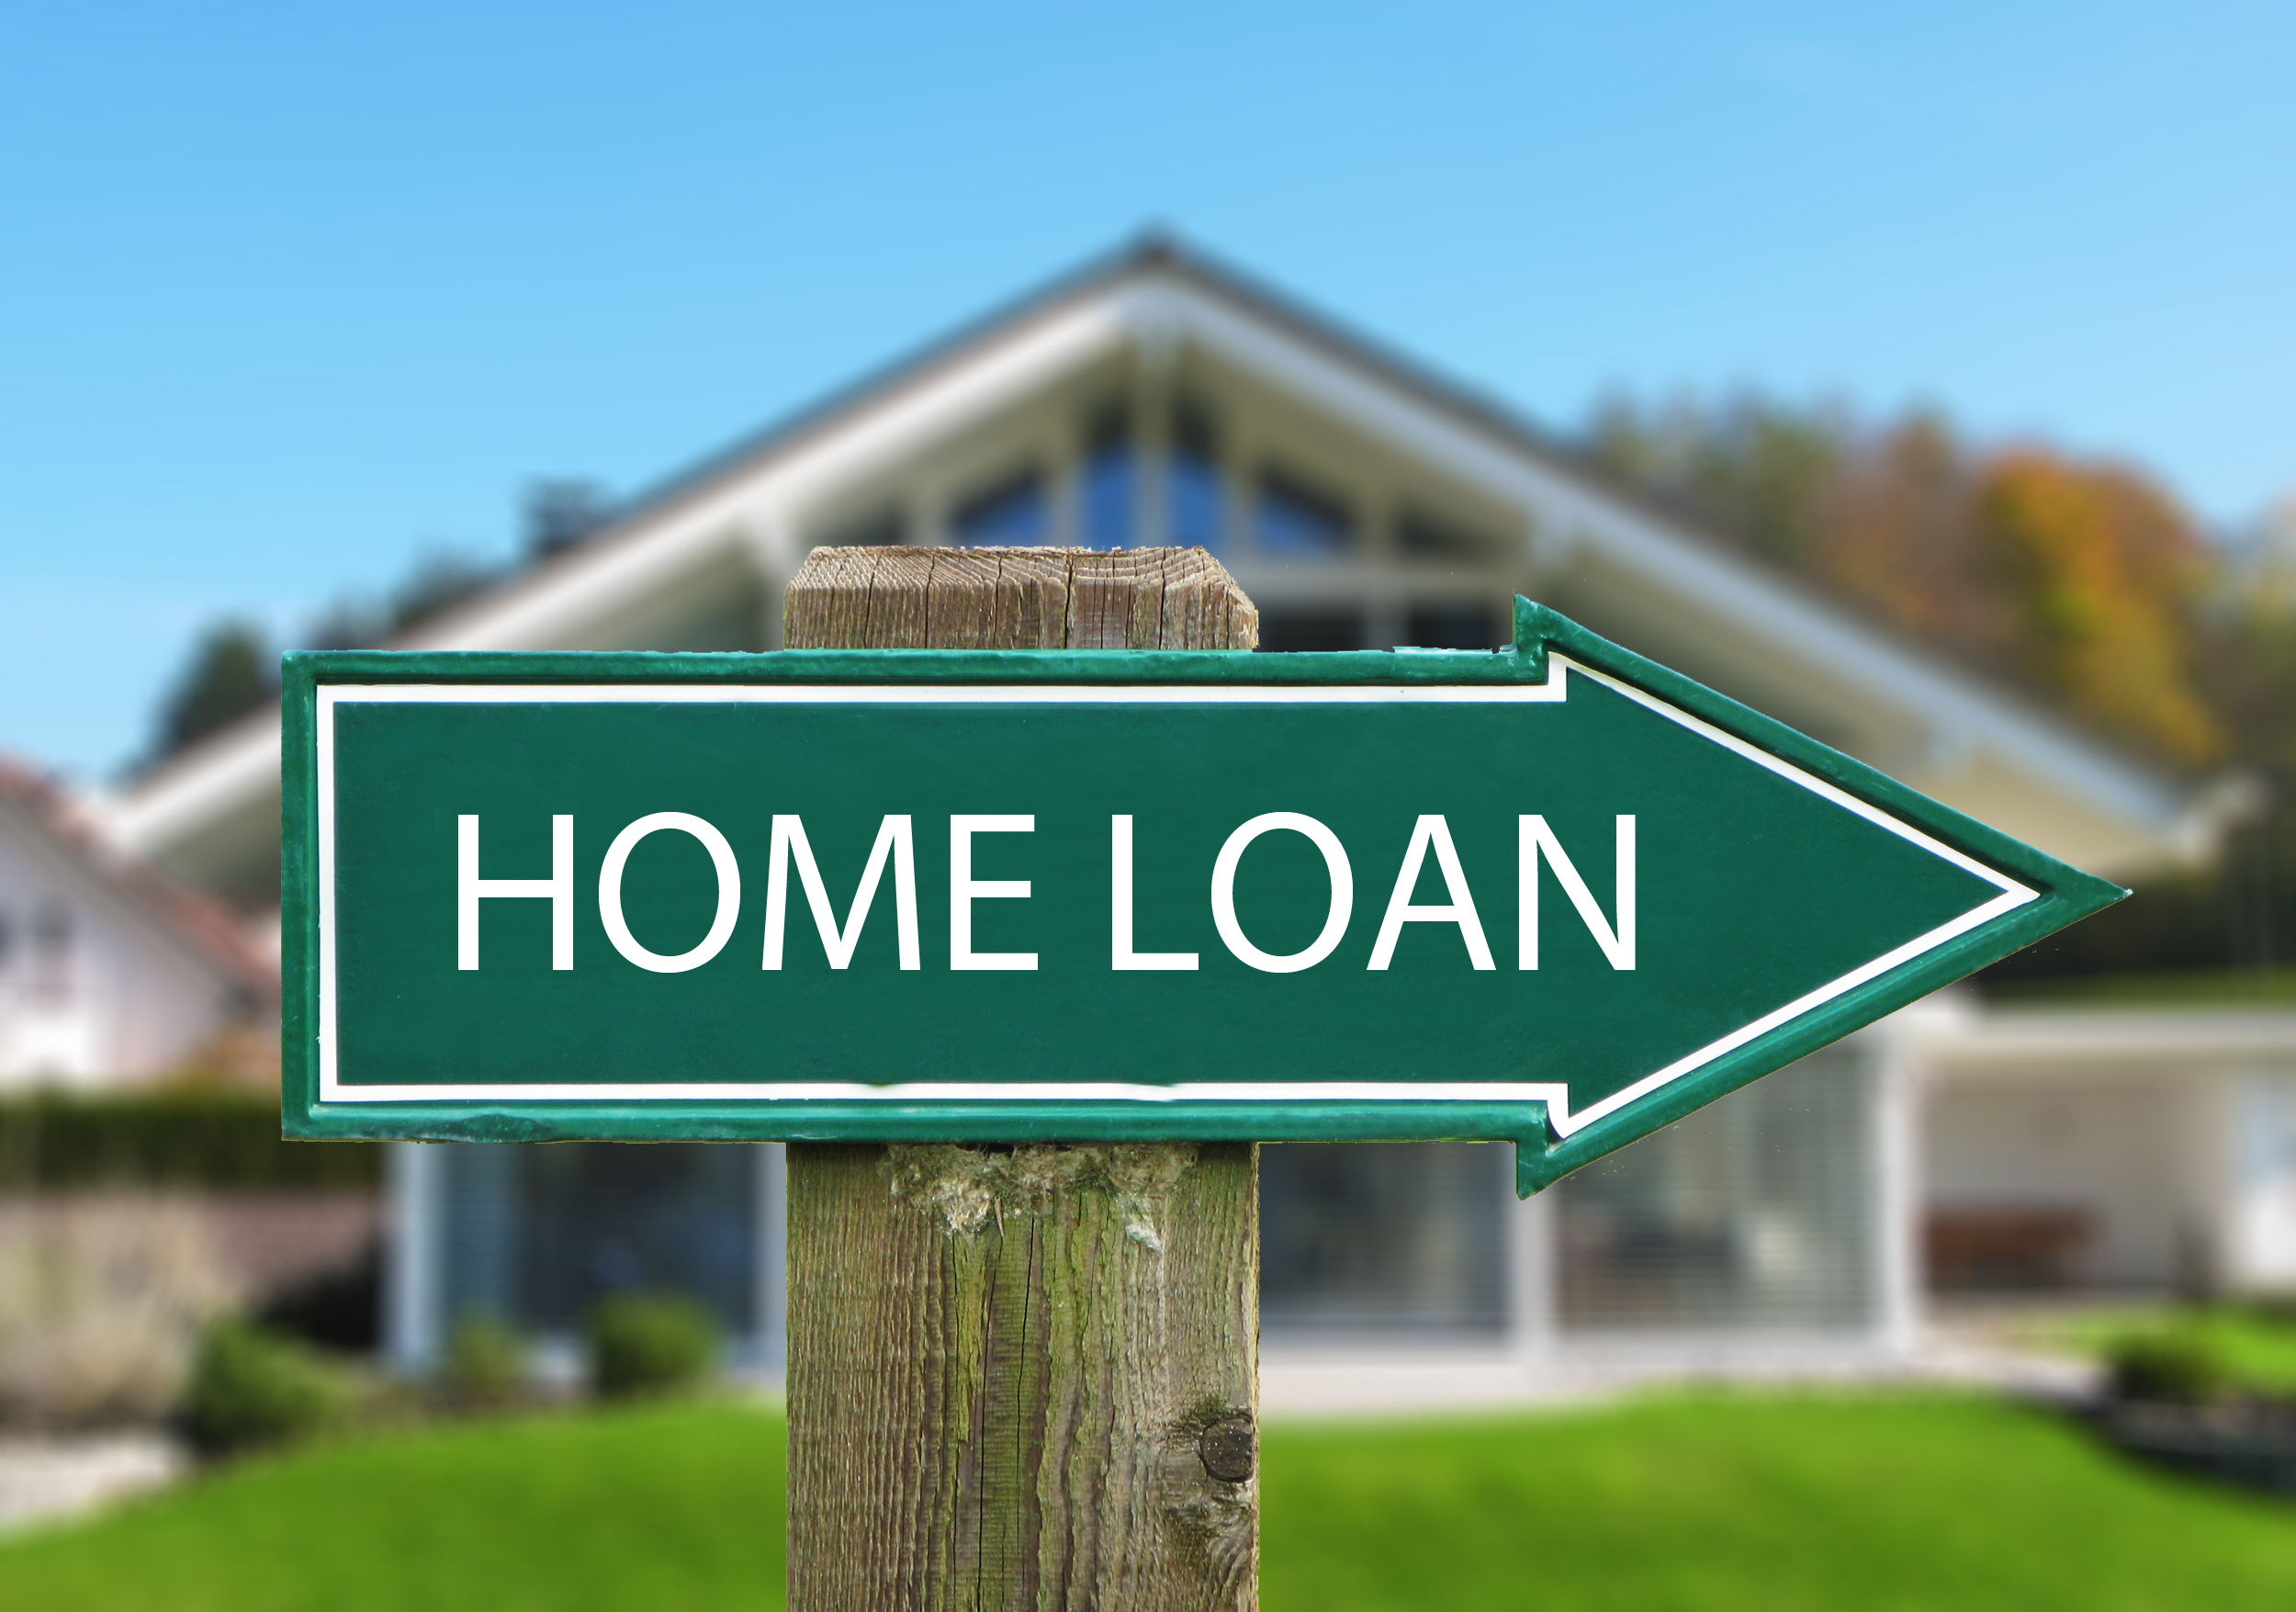 What Do Lenders Look For in a Mortgage Application?